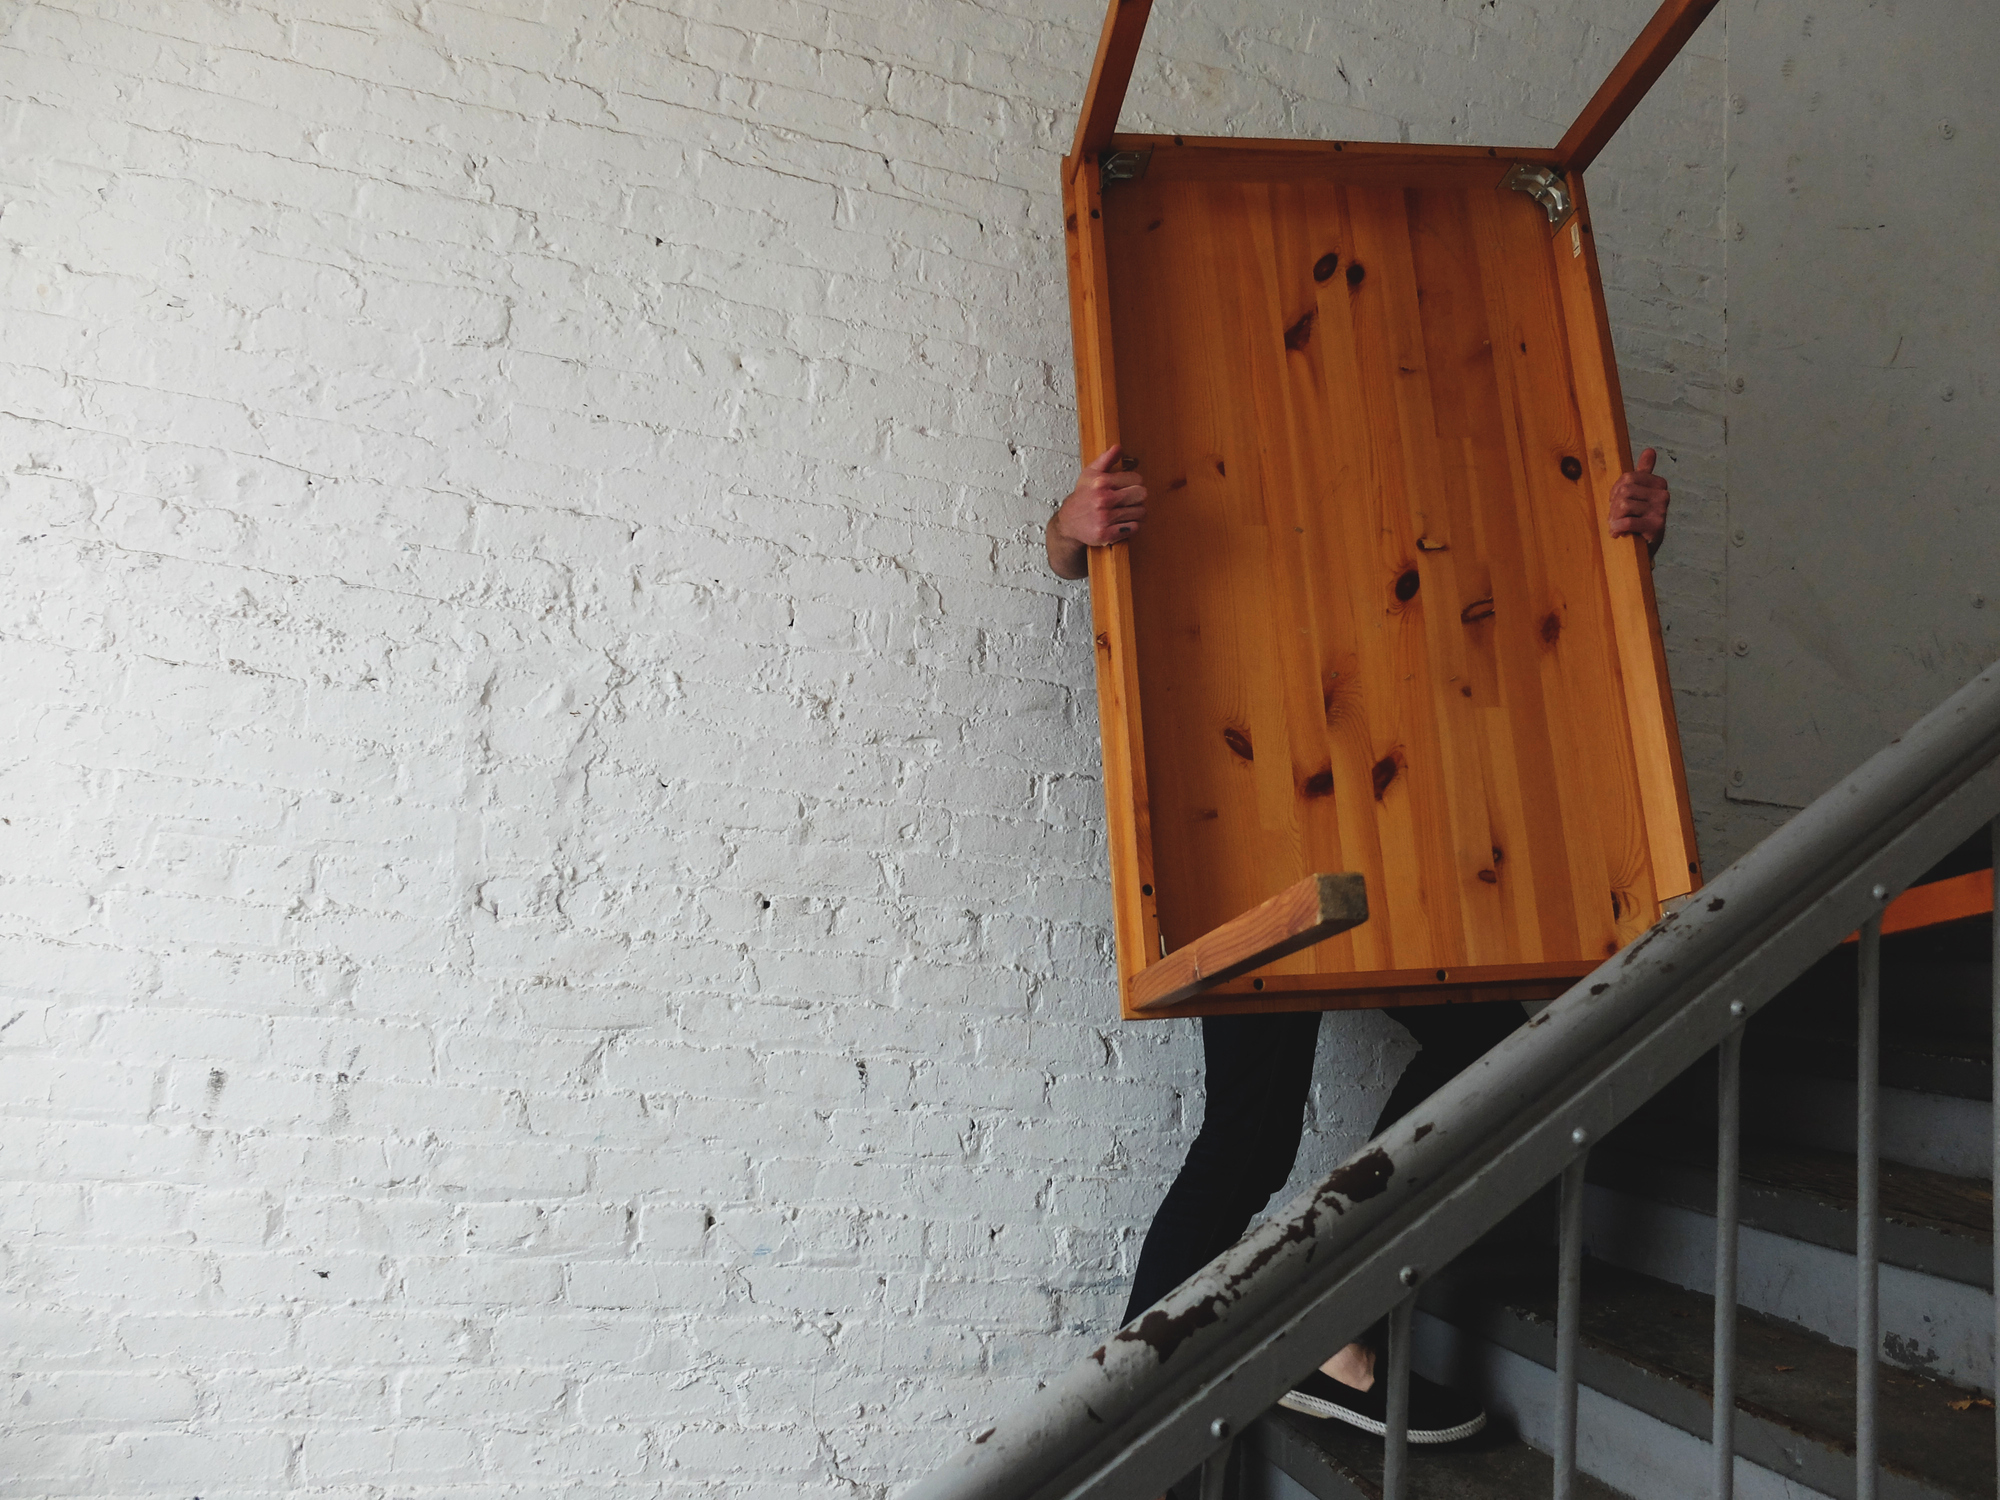 A male carrying a list down some stairs